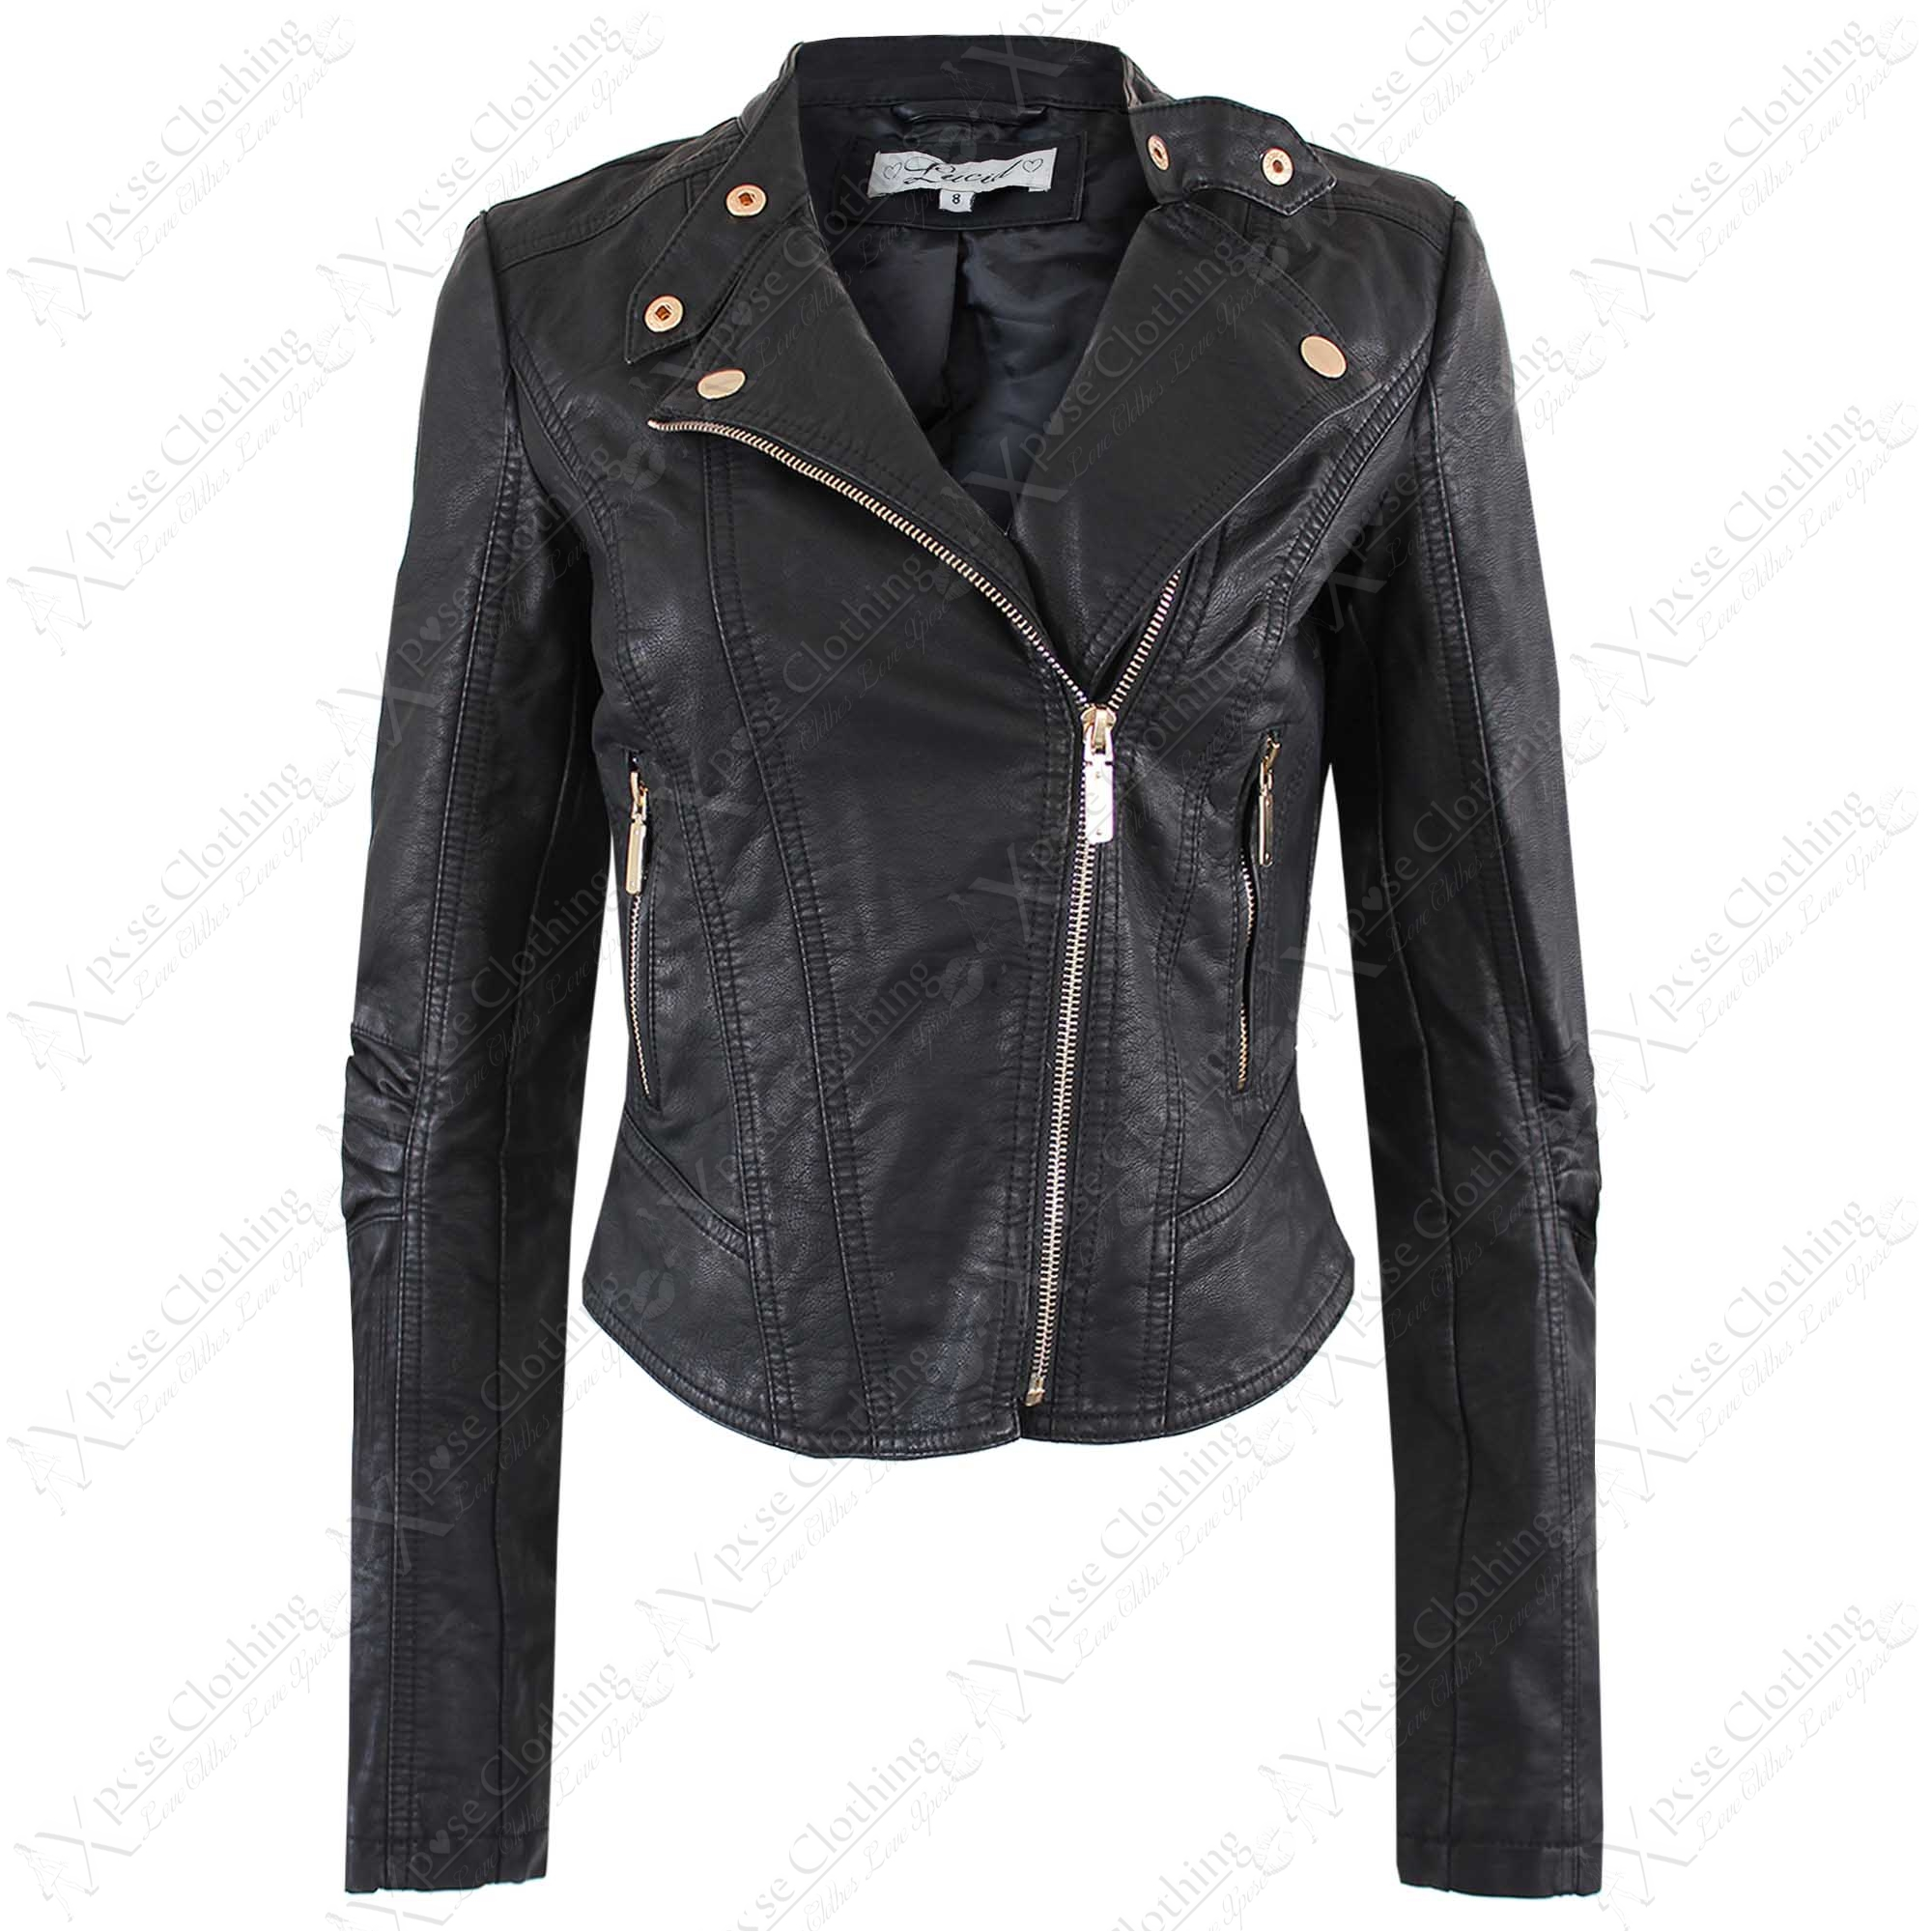 Our collection of faux leather jackets includes classic leather-look jackets in biker fits to add a touch of attitude to your outfit. Our latest leather jackets for women come in staple black as well as grey and mustard, making them effortless layers for day or night.